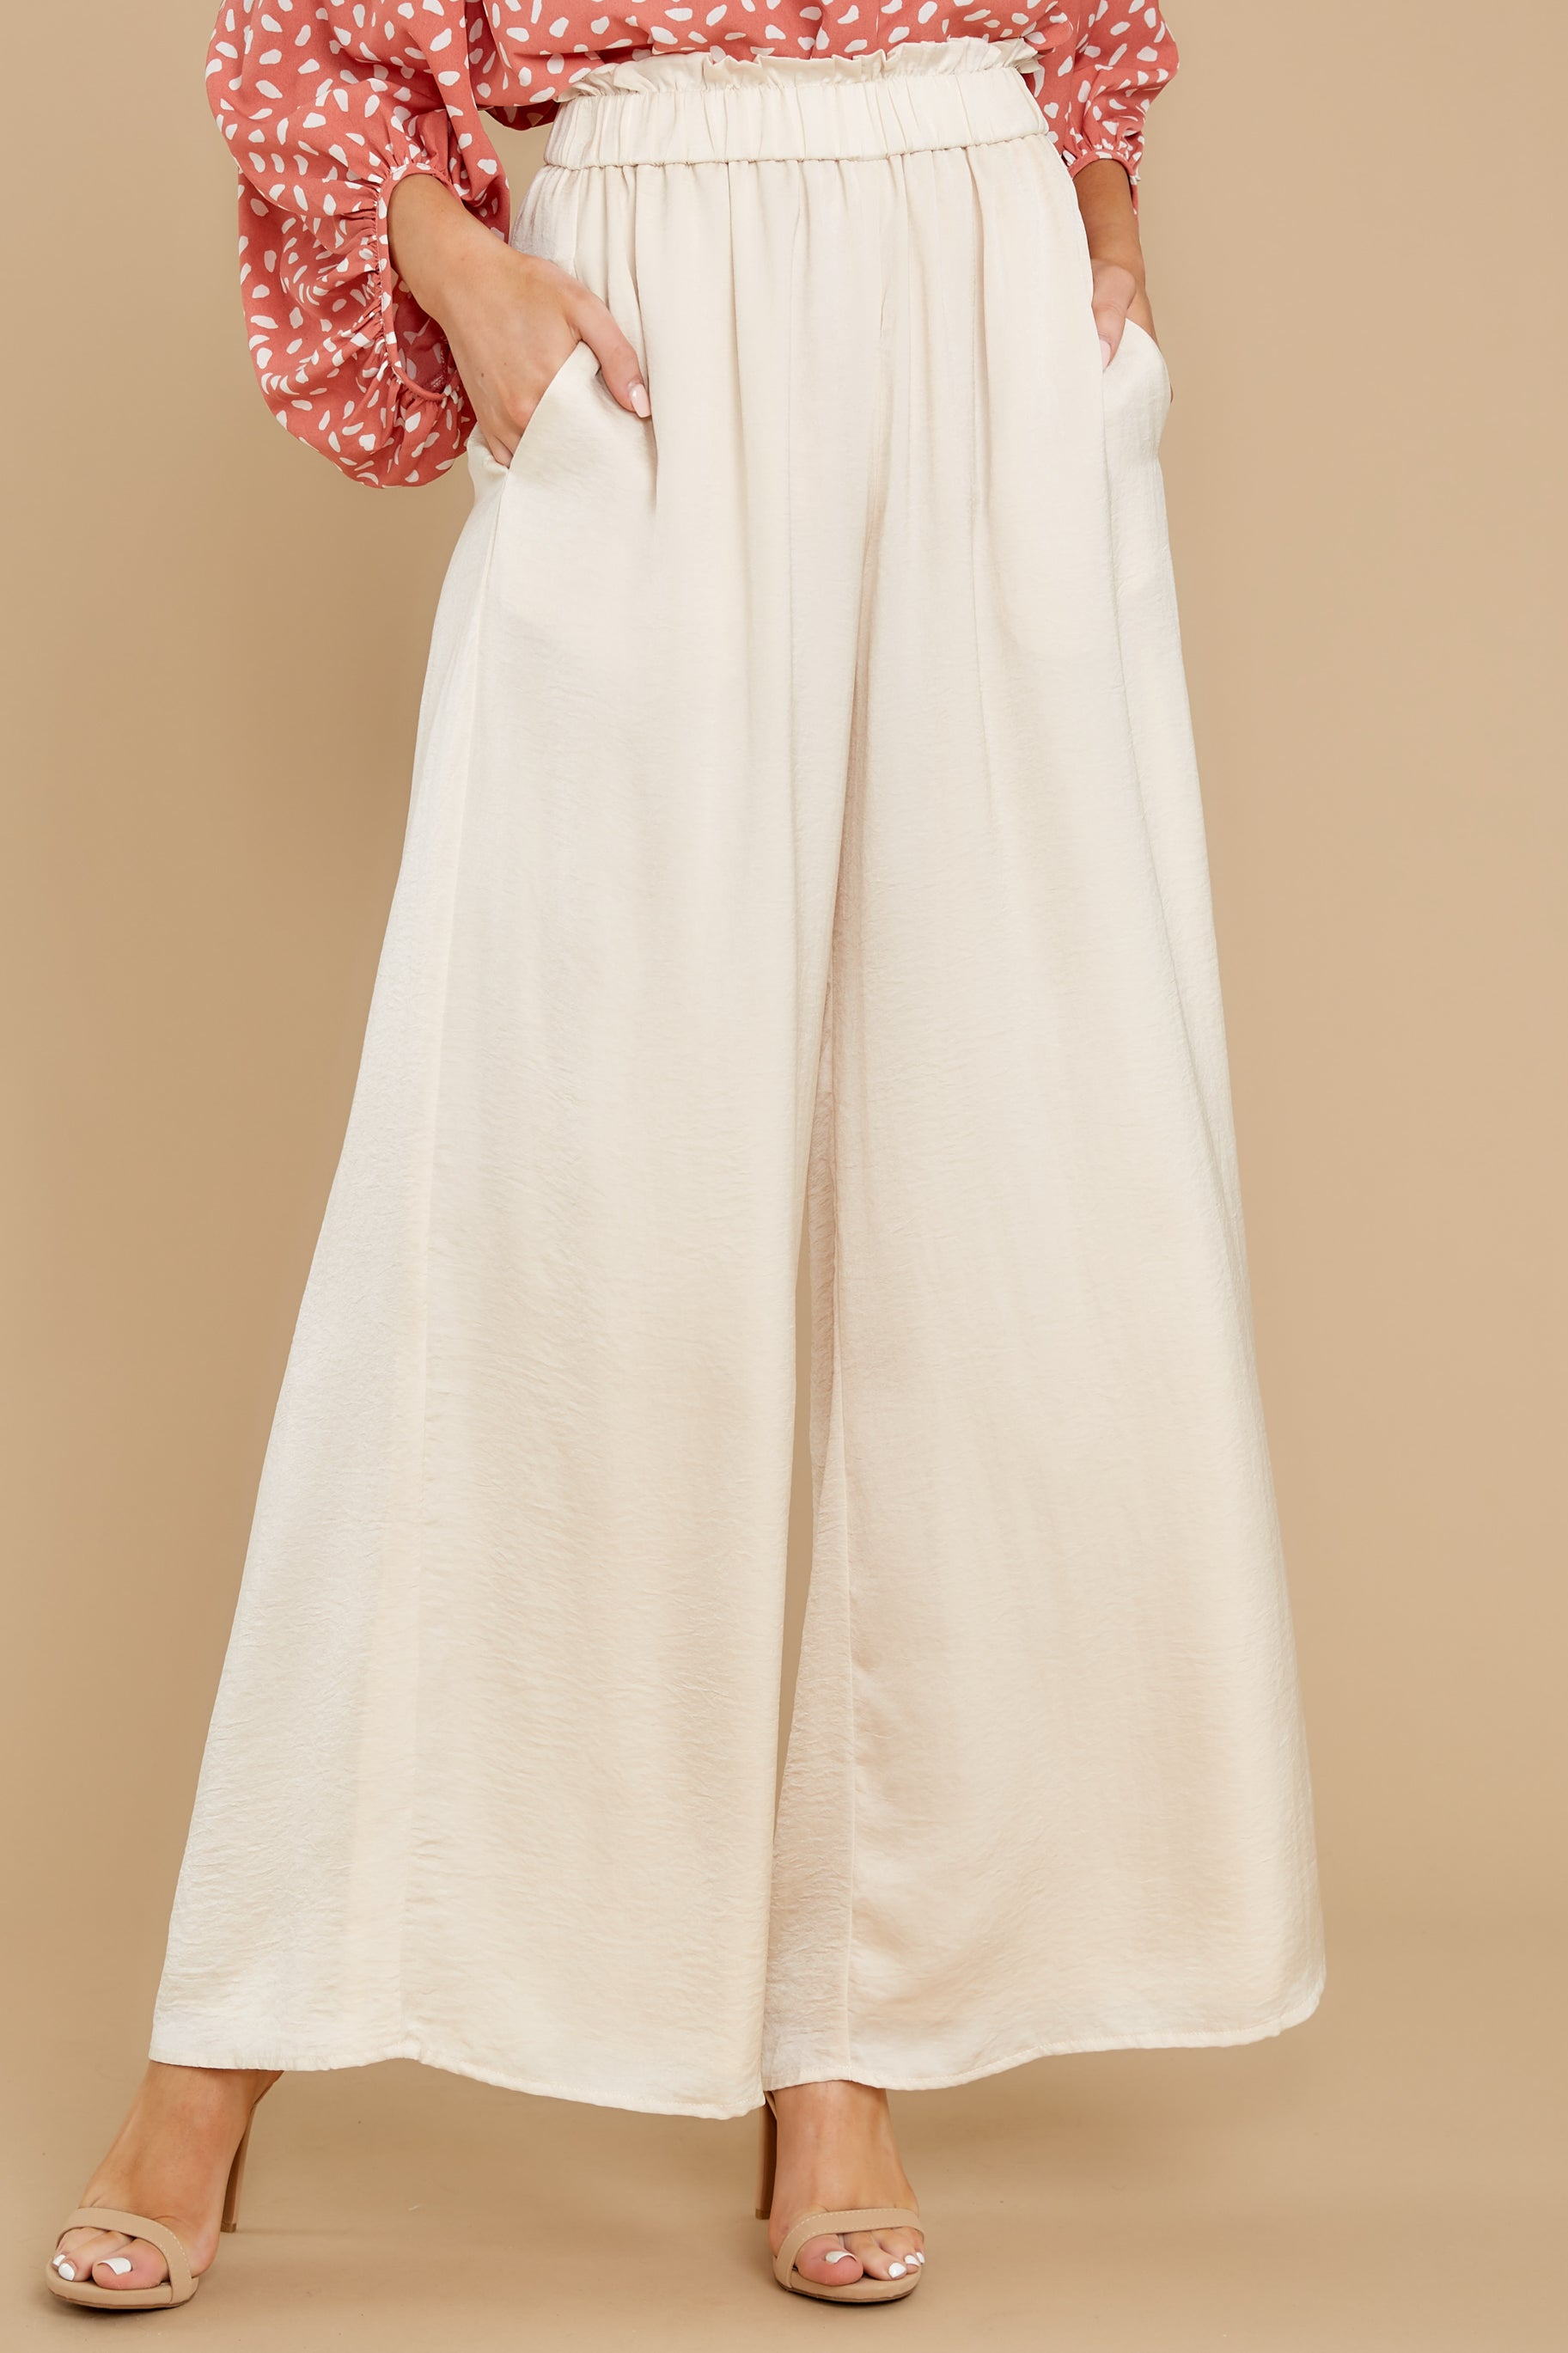 Vintage High Waisted Trousers, Sailor Pants, Jeans English Factory Must Be Certain Ivory Pants $58.00 AT vintagedancer.com